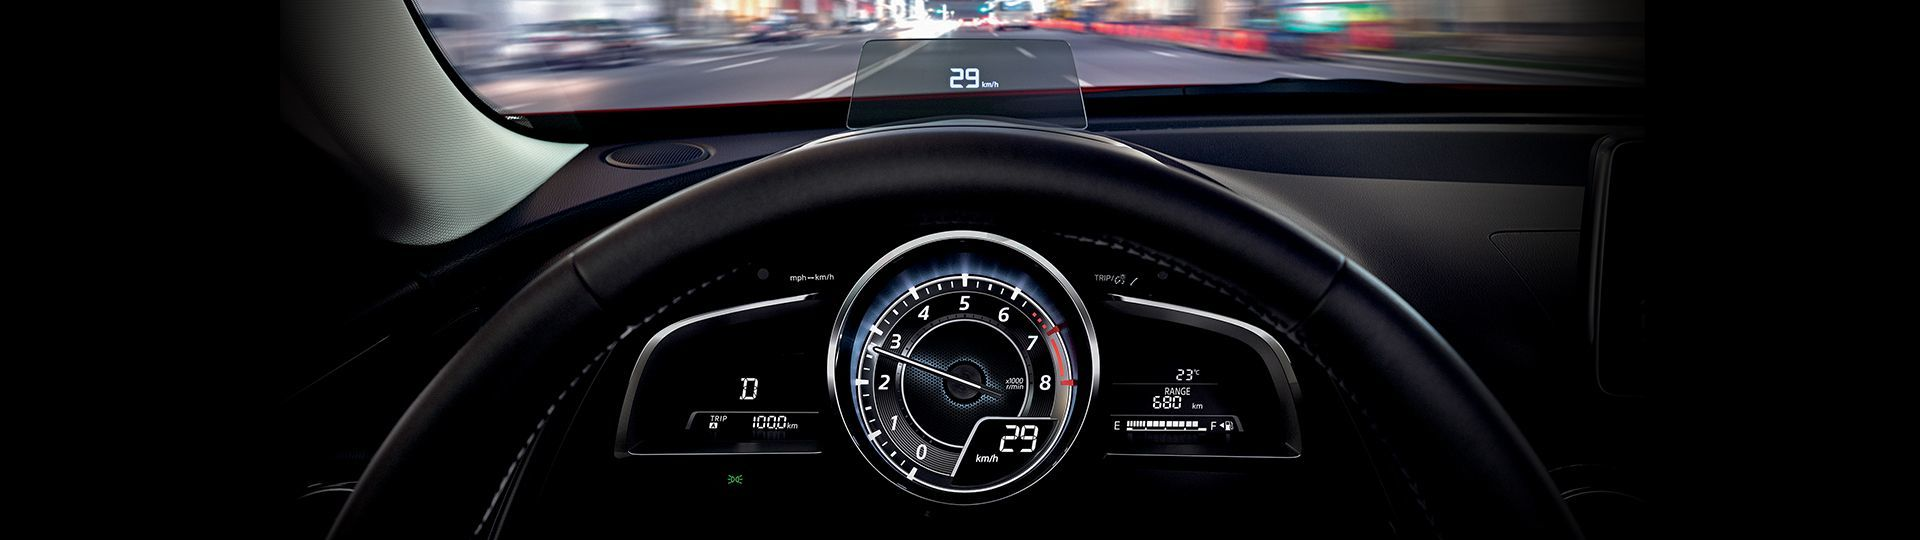 hight resolution of you ll find an energetic 2 0 l 4 cylinder skyactiv g dohc engine with 146 horsepower in the cx 3 that can come with the 6 speed skyactiv mt manual